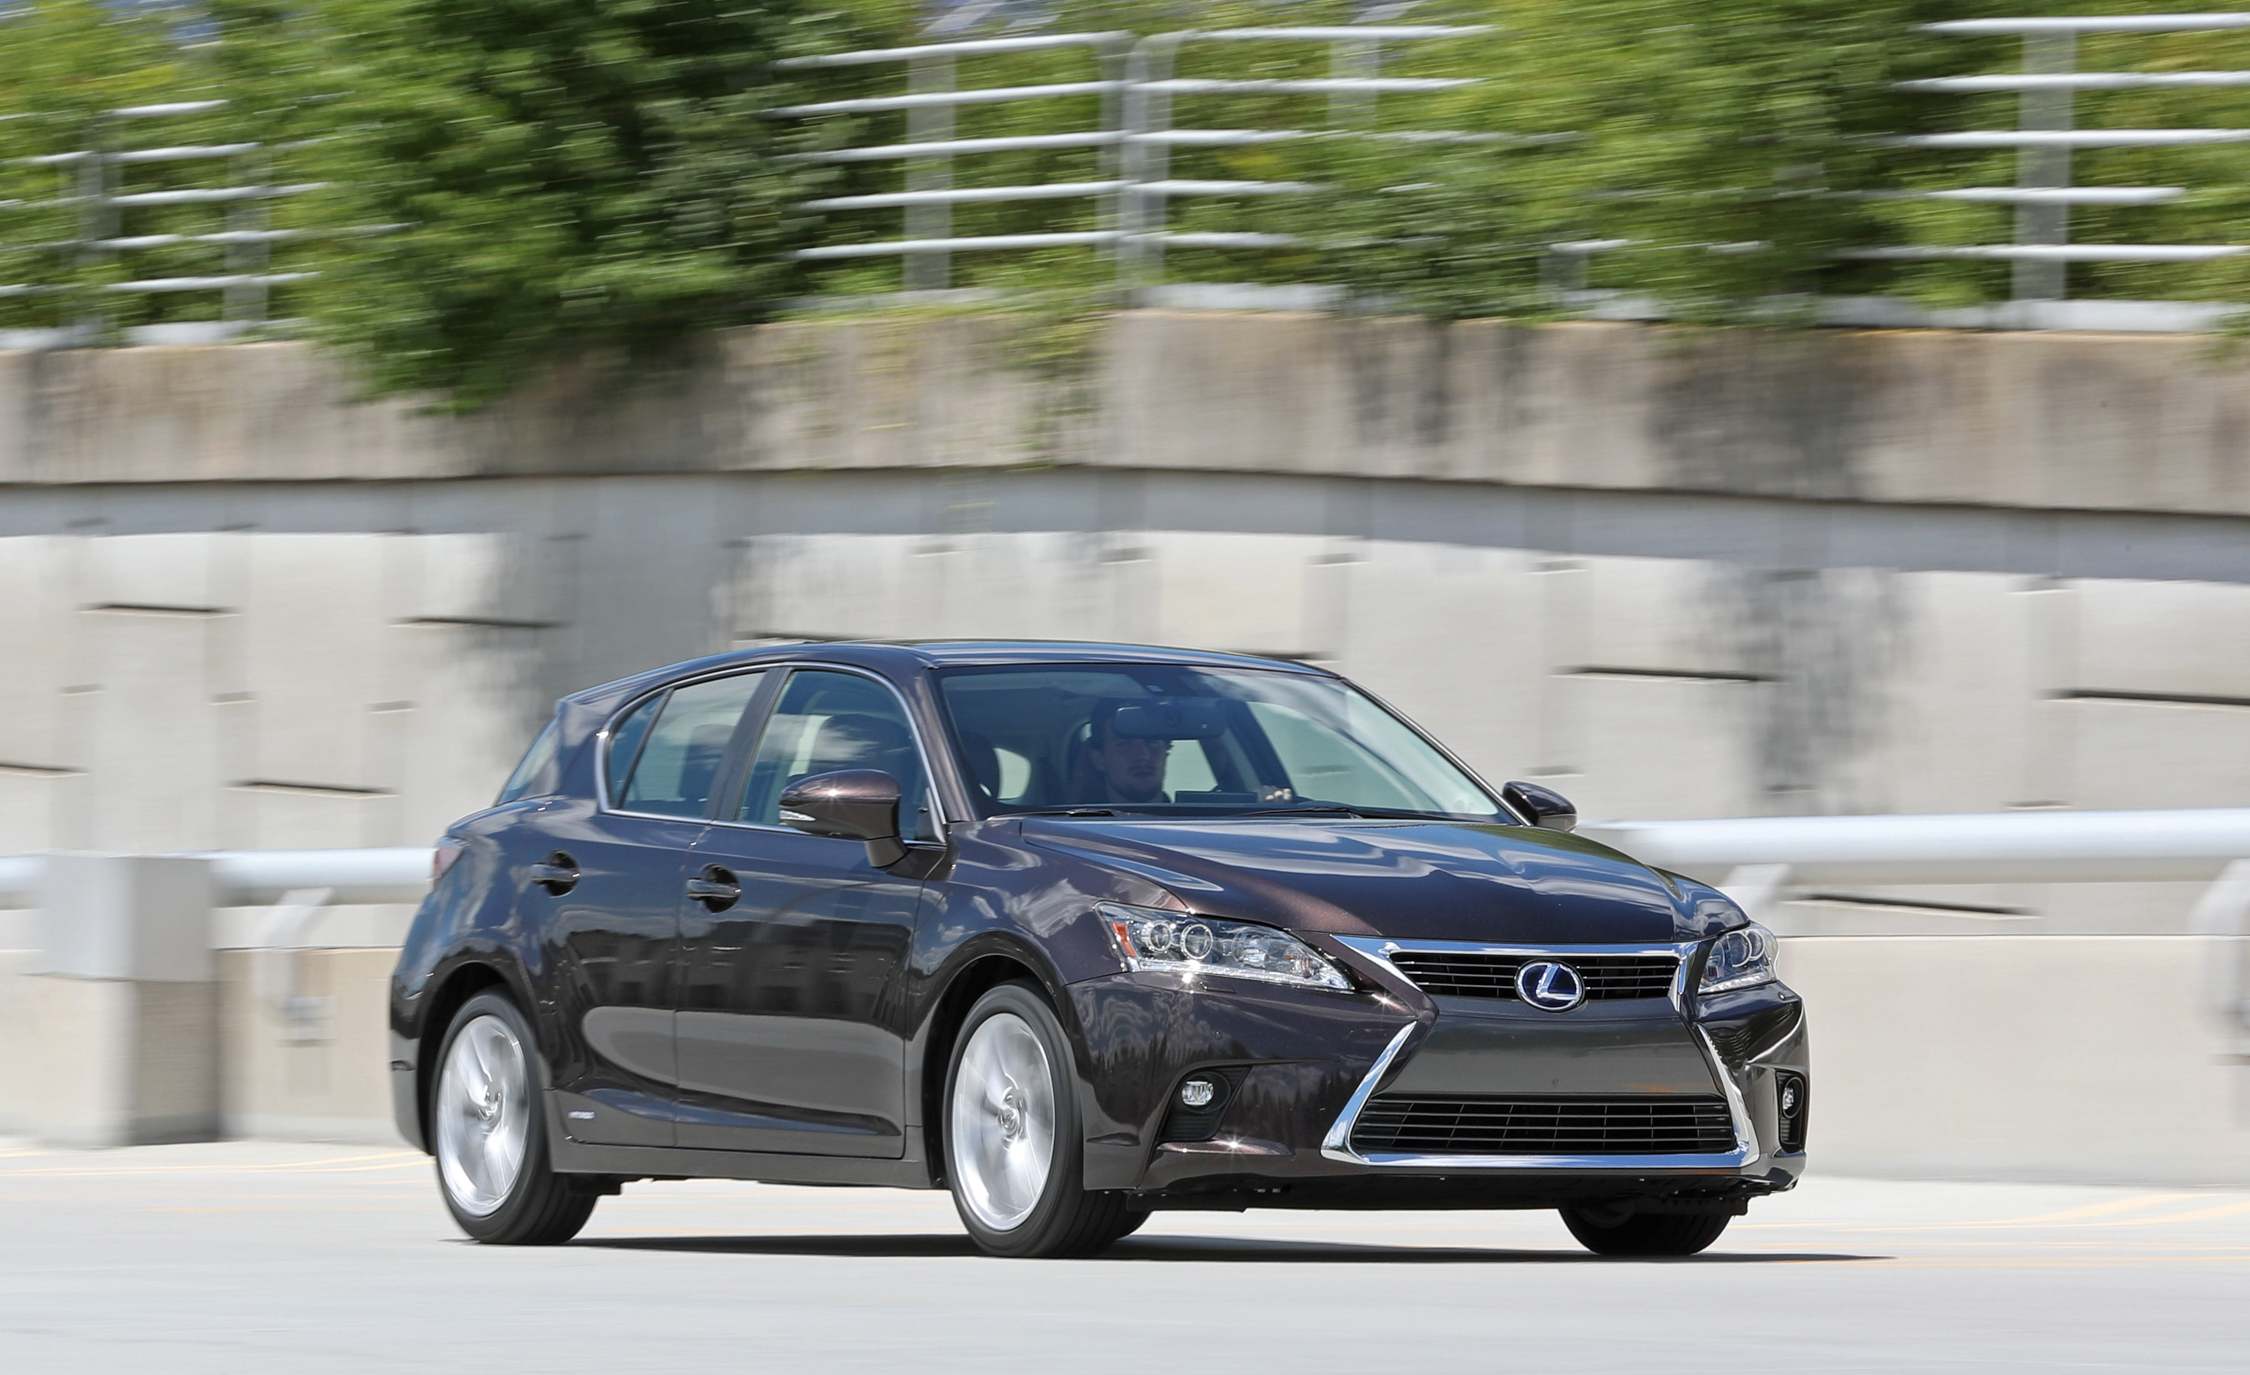 2016 Lexus CT200h (View 21 of 29)